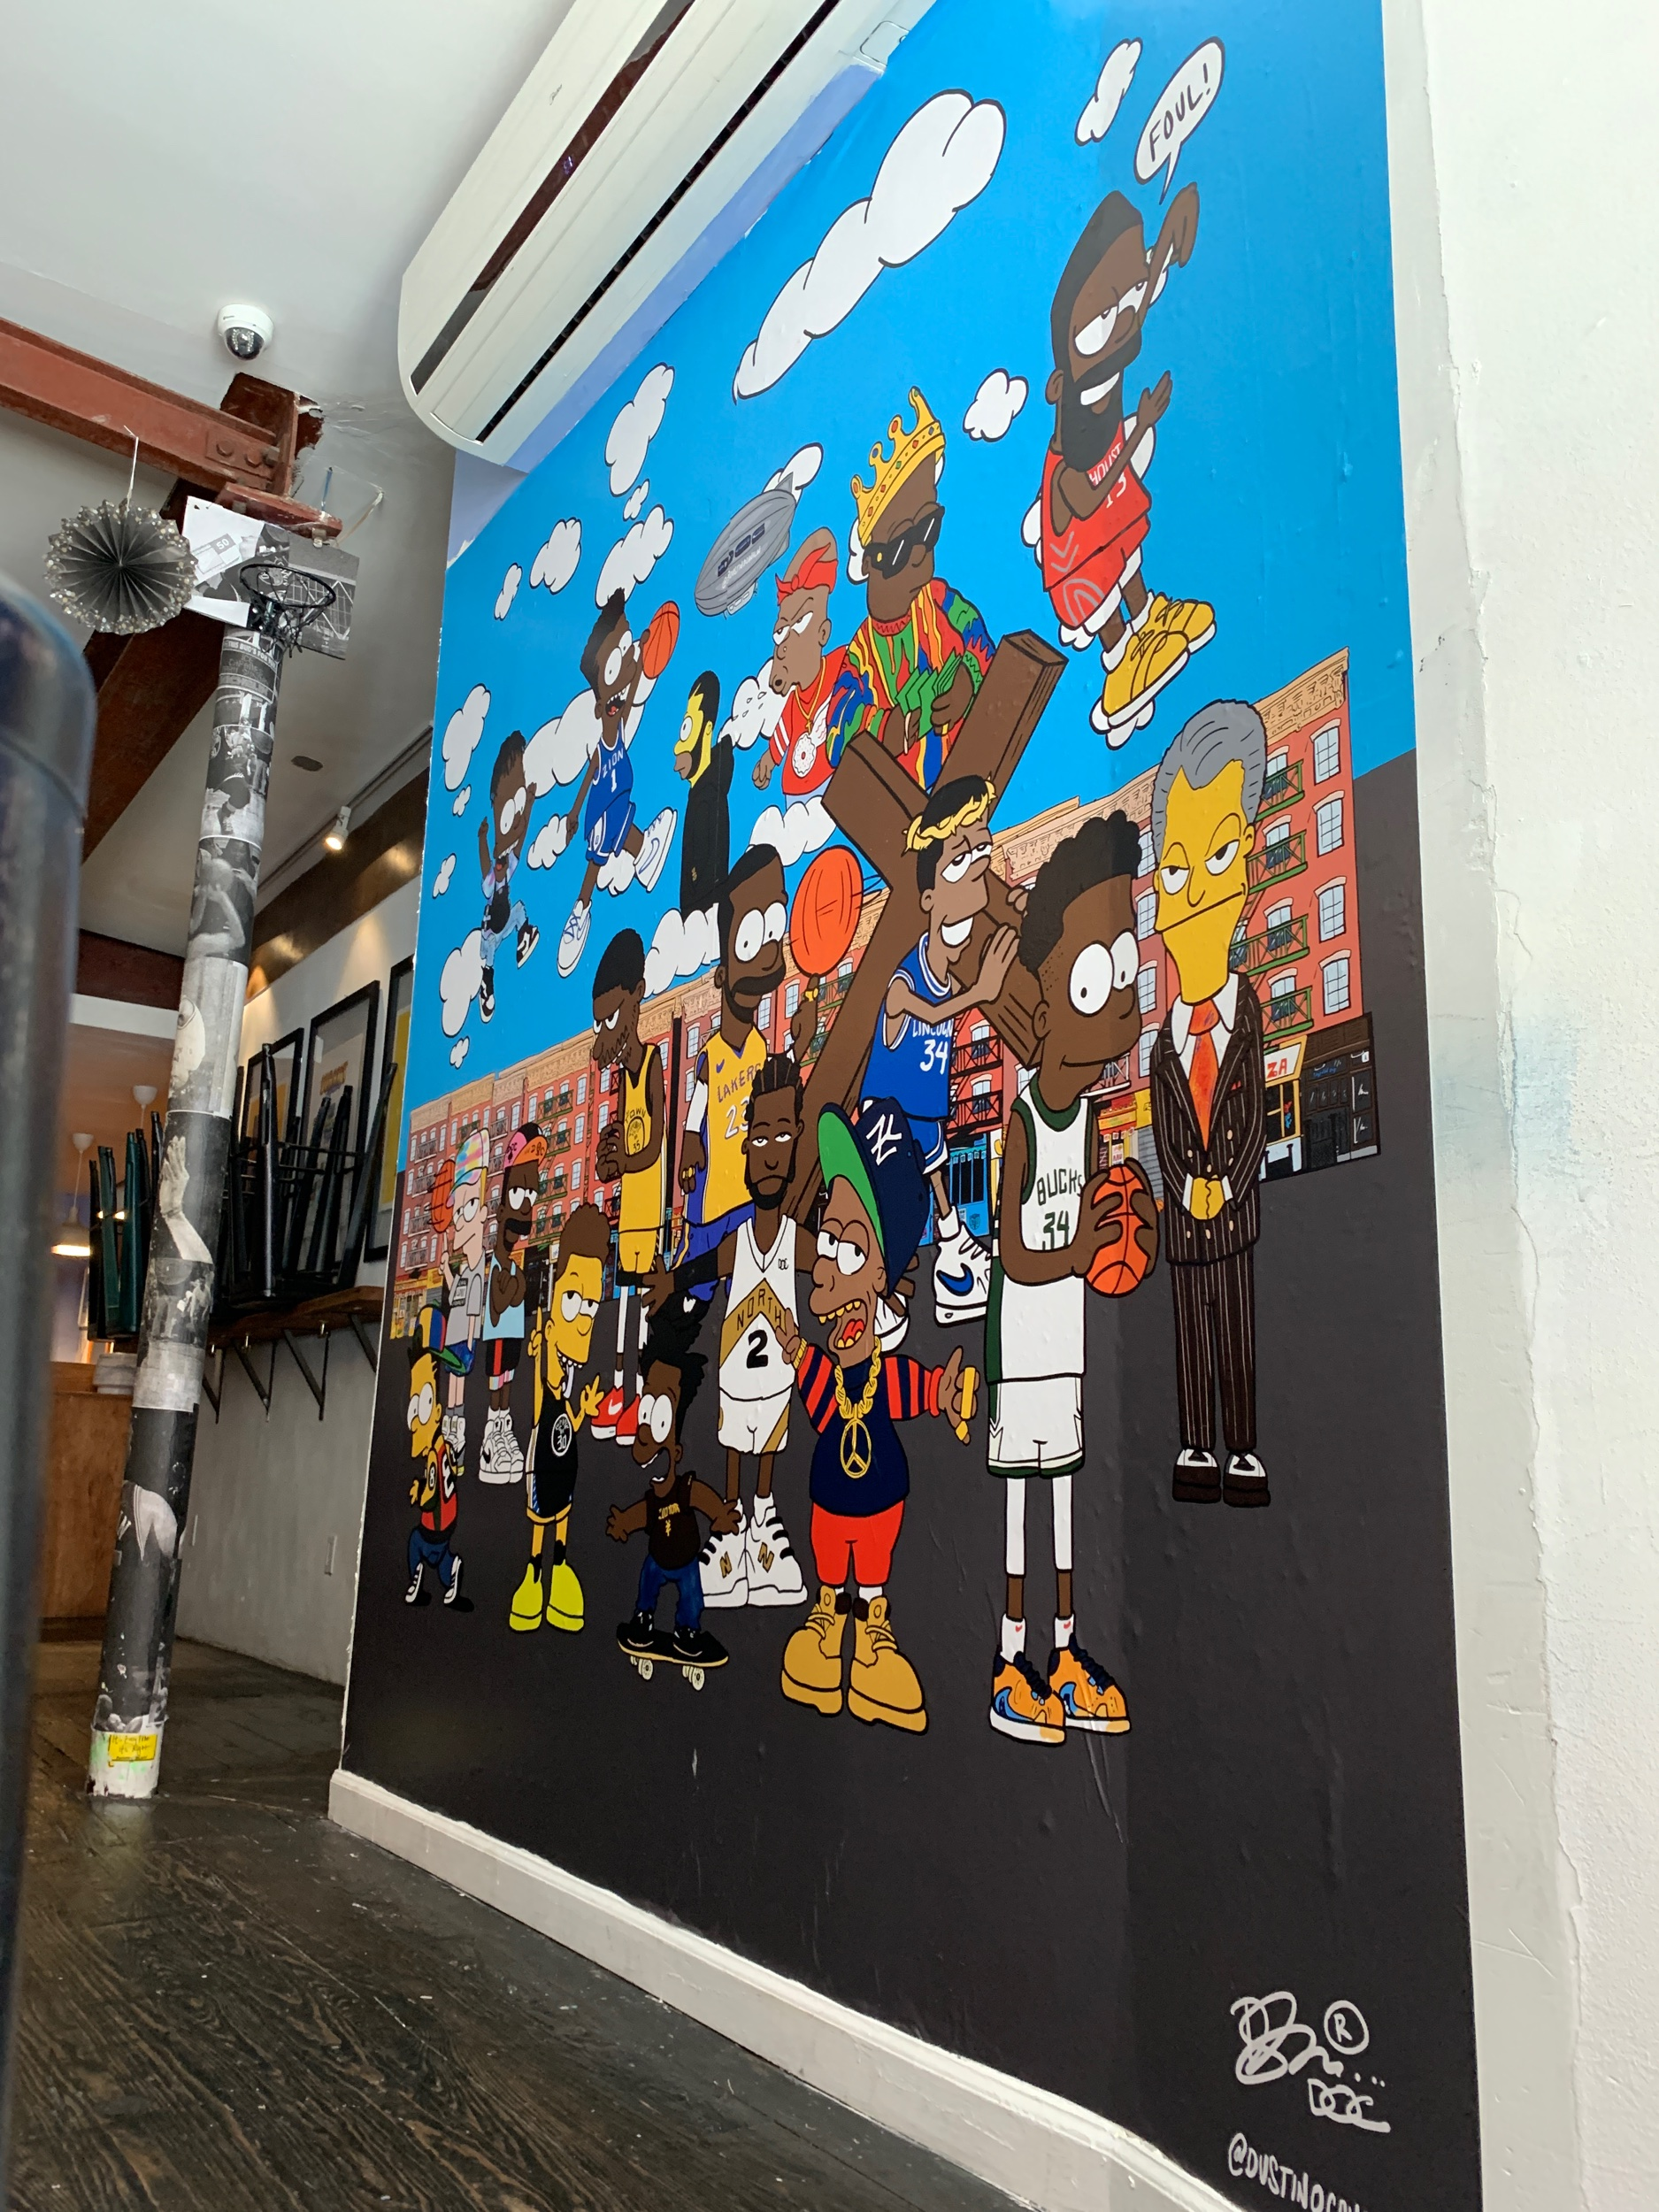 A new mural installed at  Boys Don't Cry  in NY, in honor of The NBA Finals. As in all of my work, a level of detail and authenticity is what inspired the latest work. Located on The Lower East Side's iconic Orchard St. I wanted to make sure that I was able to convey the neighborhood, the people, shops and culture that presided before today. See how many people you can identify.  Also be sure to check out the other NBA Finals inspired works are also on display throughout The summer.